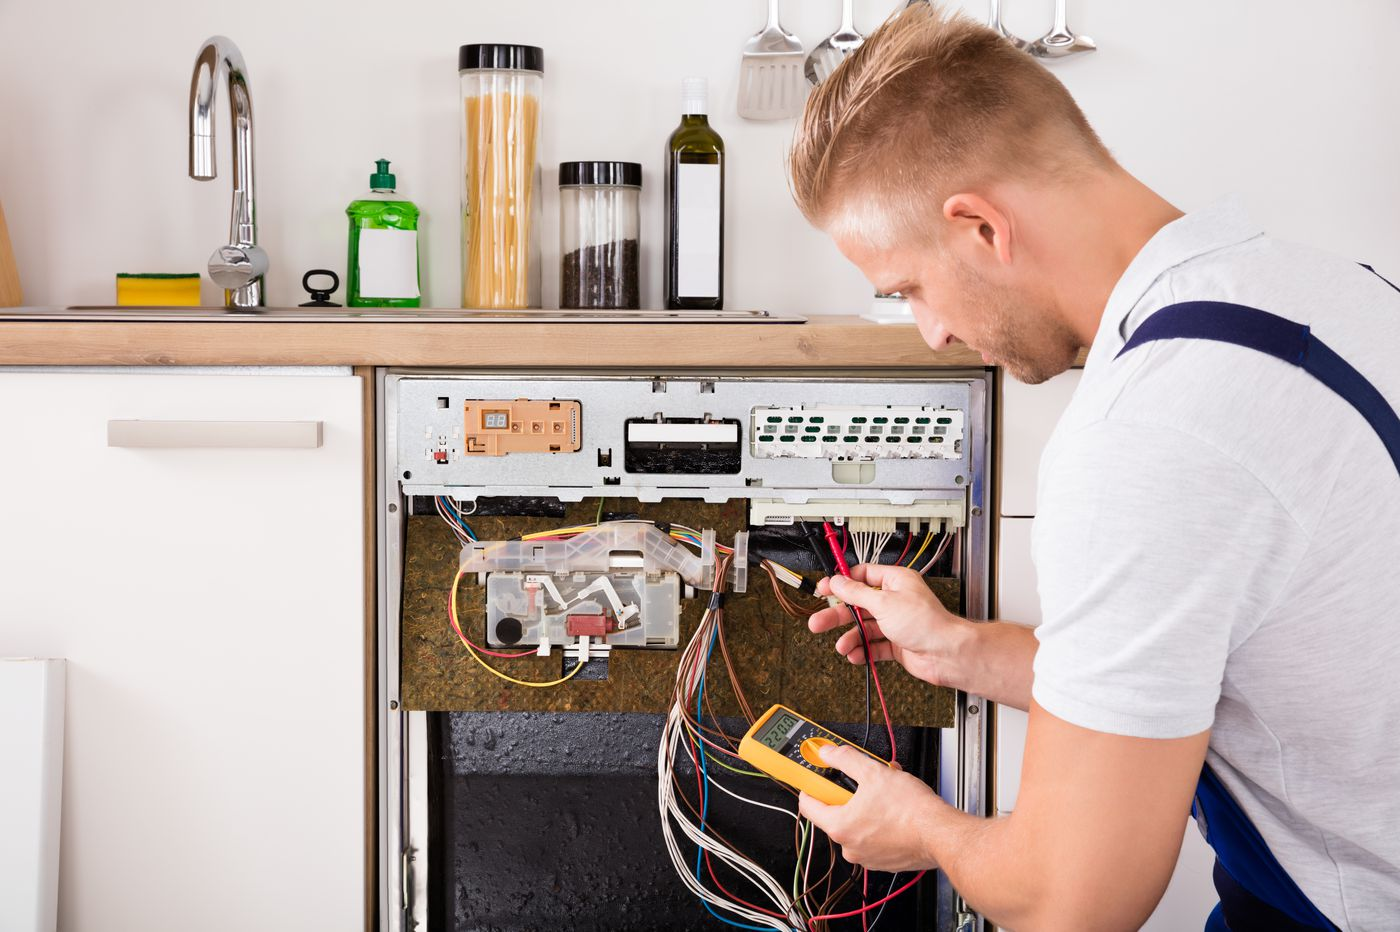 Power up your search for high-quality appliance repair help